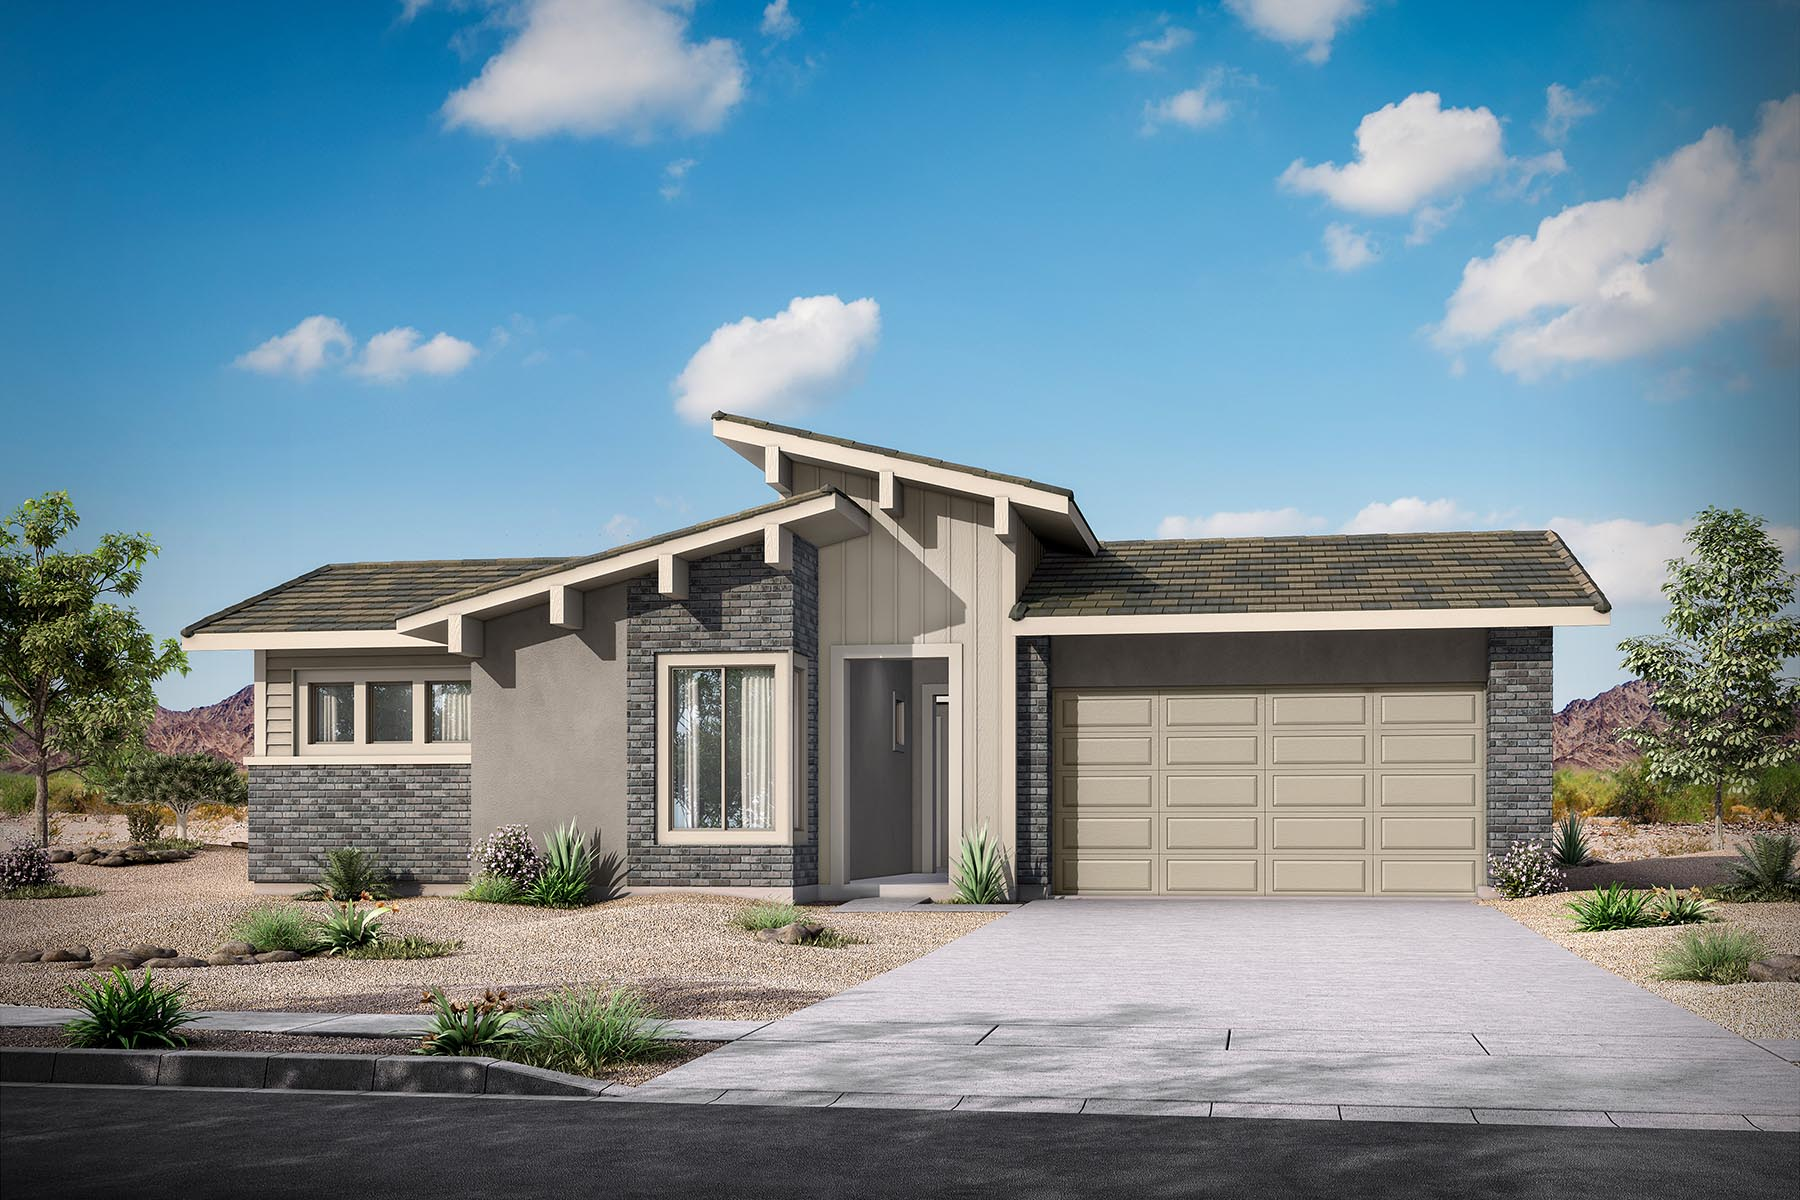 Martina Plan Elevation Front at Malone Estates in Queen Creek Arizona by Mattamy Homes